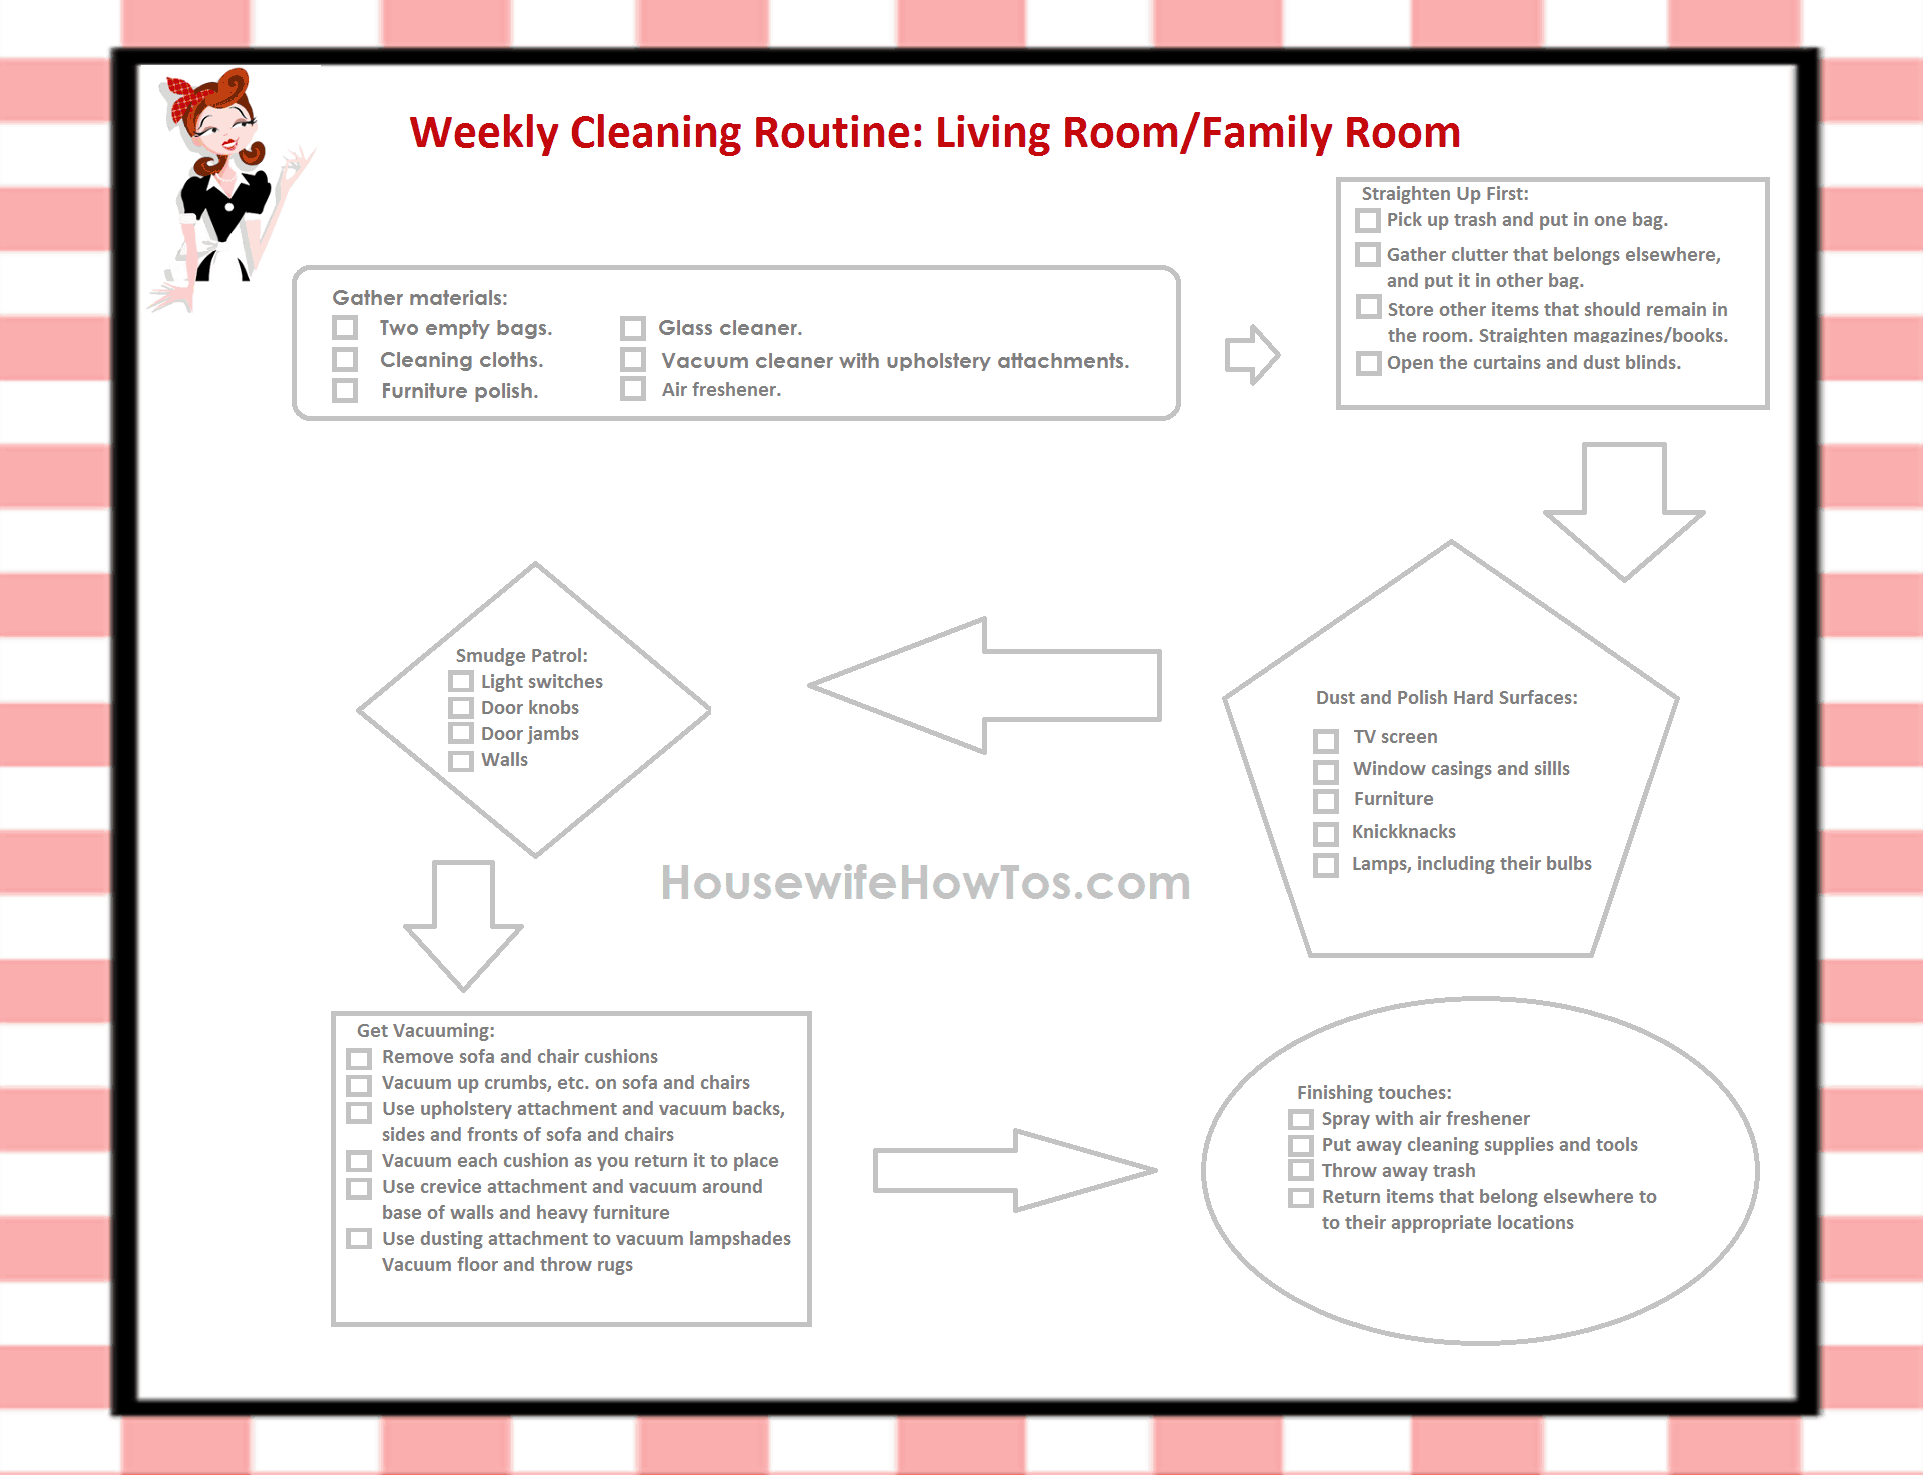 Printable weekly living or family room cleaning routine from HousewifeHowTos.com